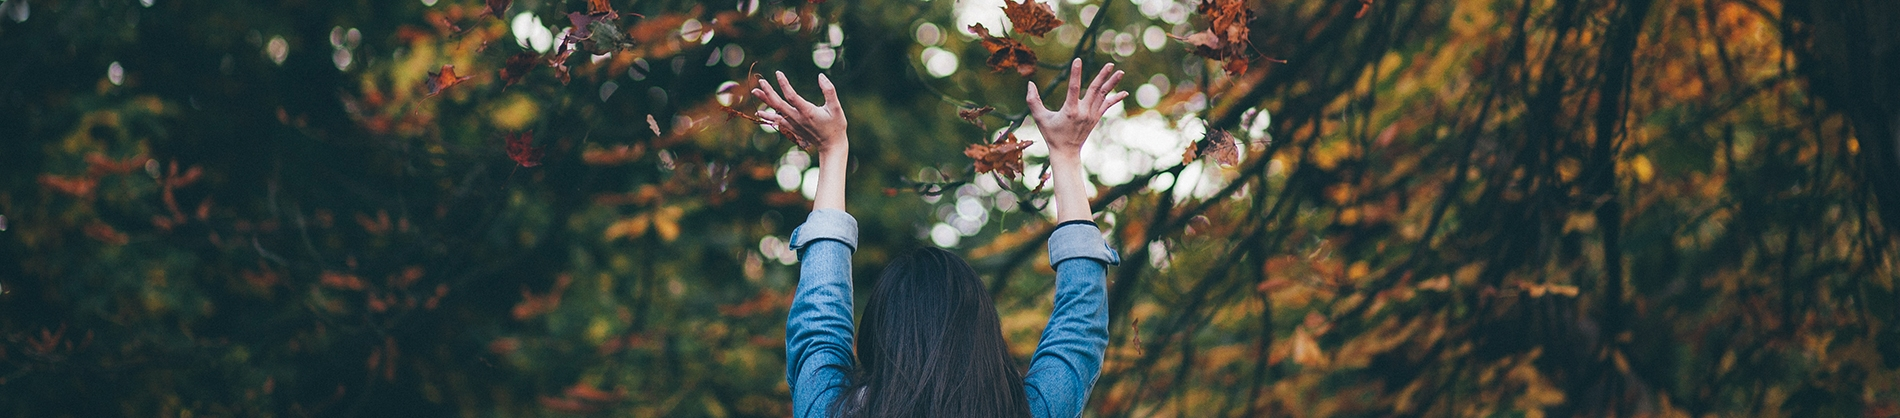 A women with her hands in the air surrounded by autumnal leaves and trees